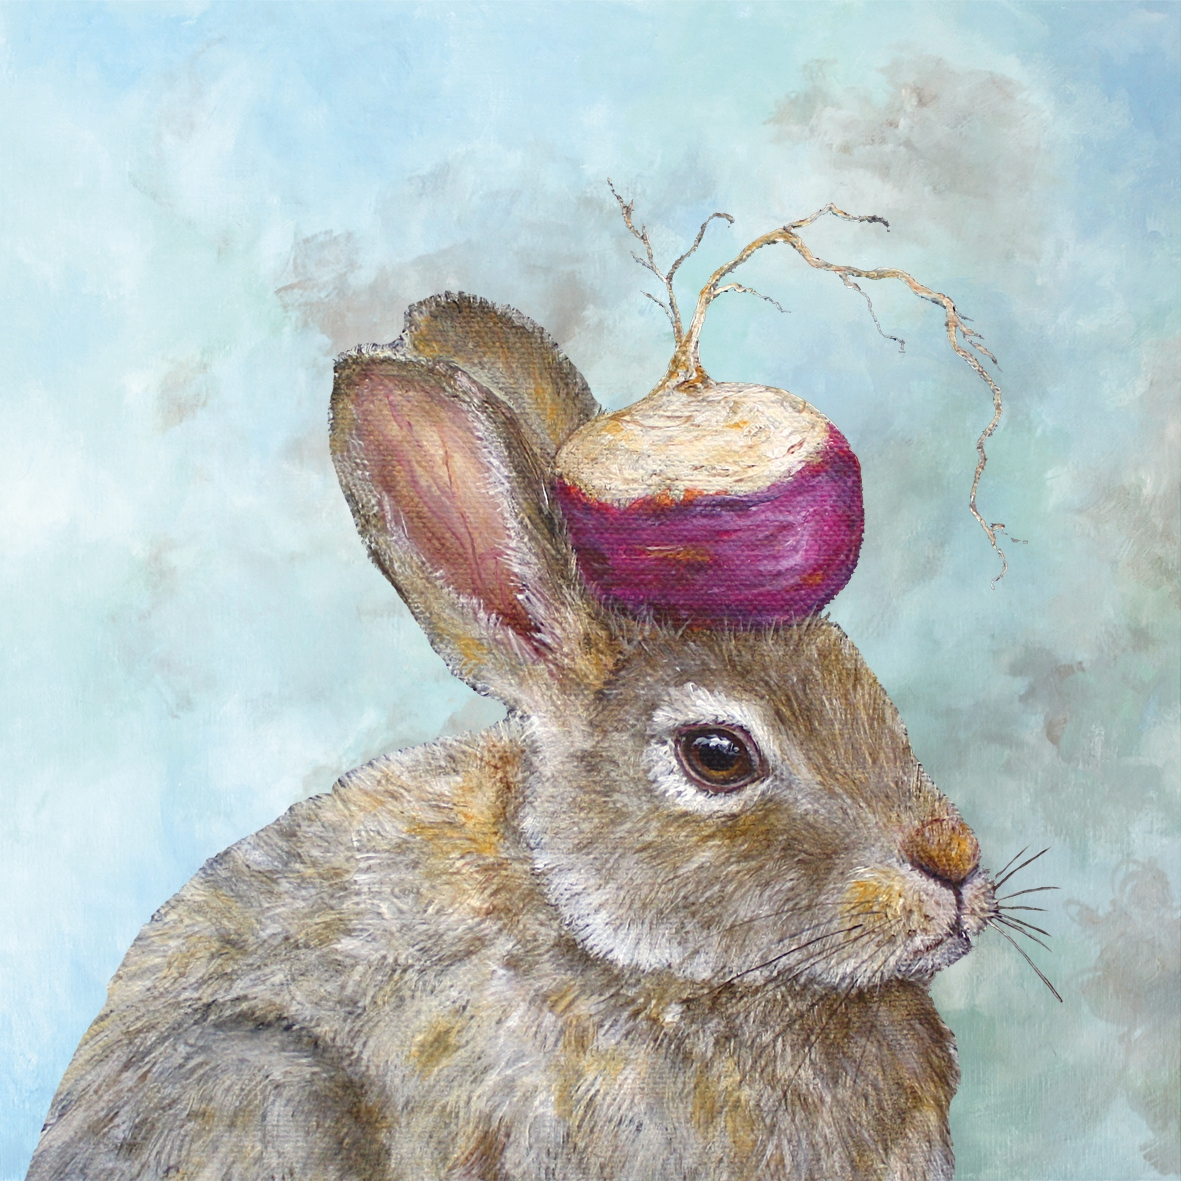 Lunch Servietten The Turnip Guardian,  Tiere - Hasen,  Ostern,  lunchservietten,  Hasen